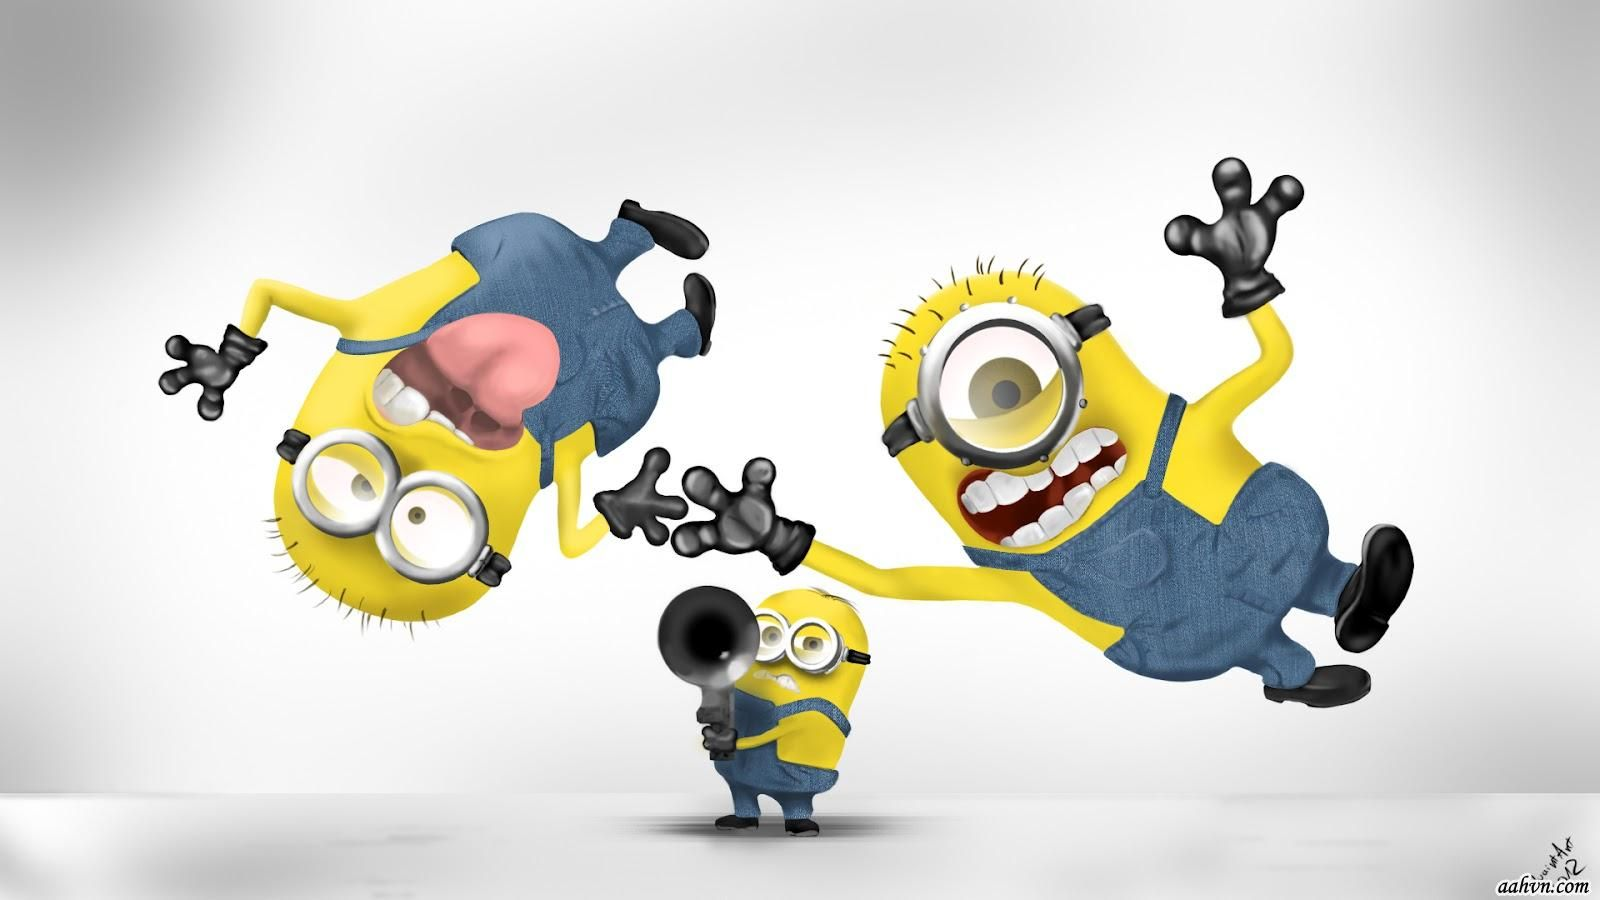 Wonderful Despicable Me Minion Wallpapers Wallpaper Minions Picture Wallpapers  Wallpapers)